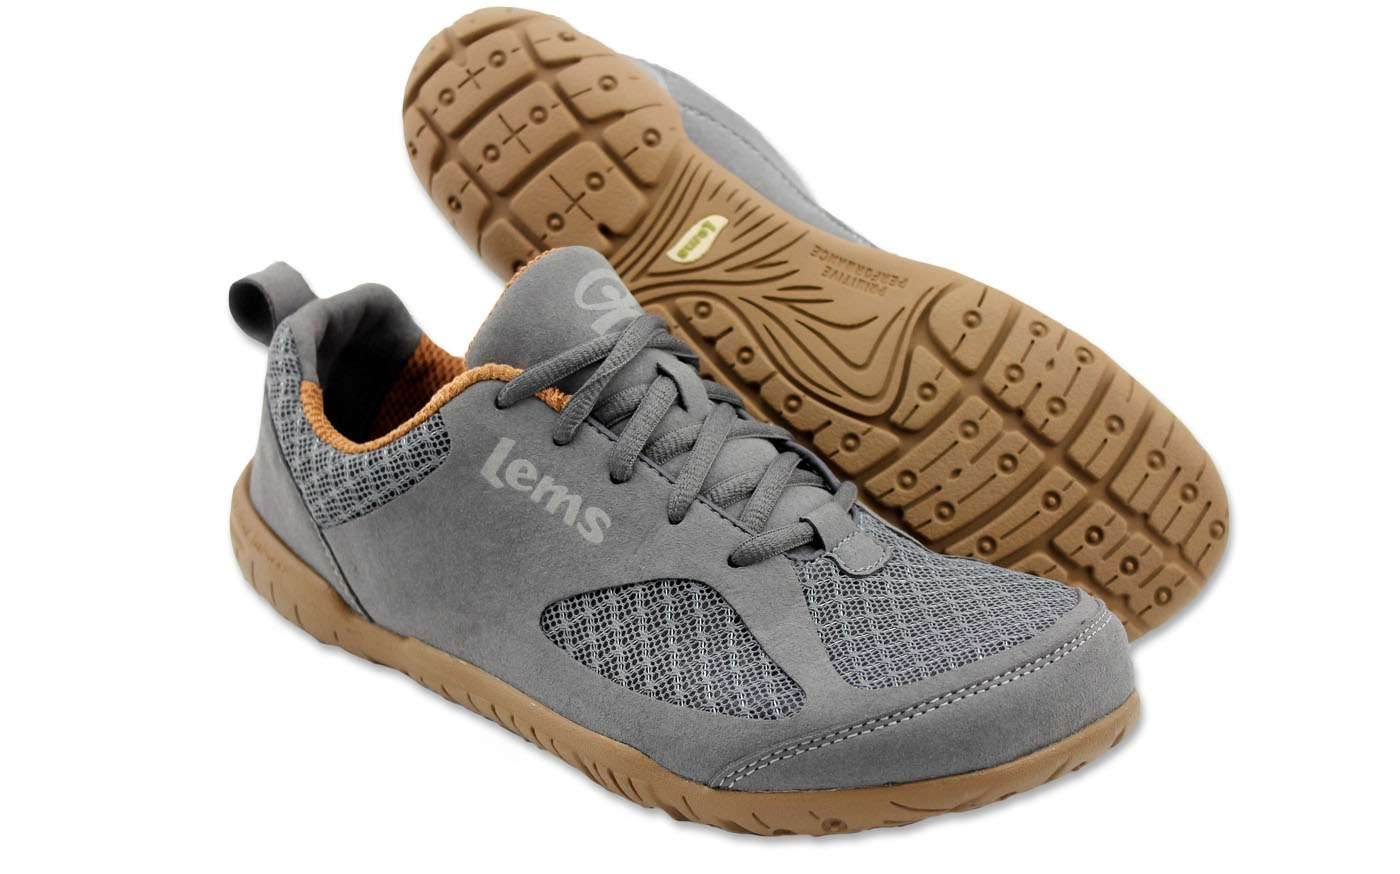 Lems Primal 2 | shoes barefoot